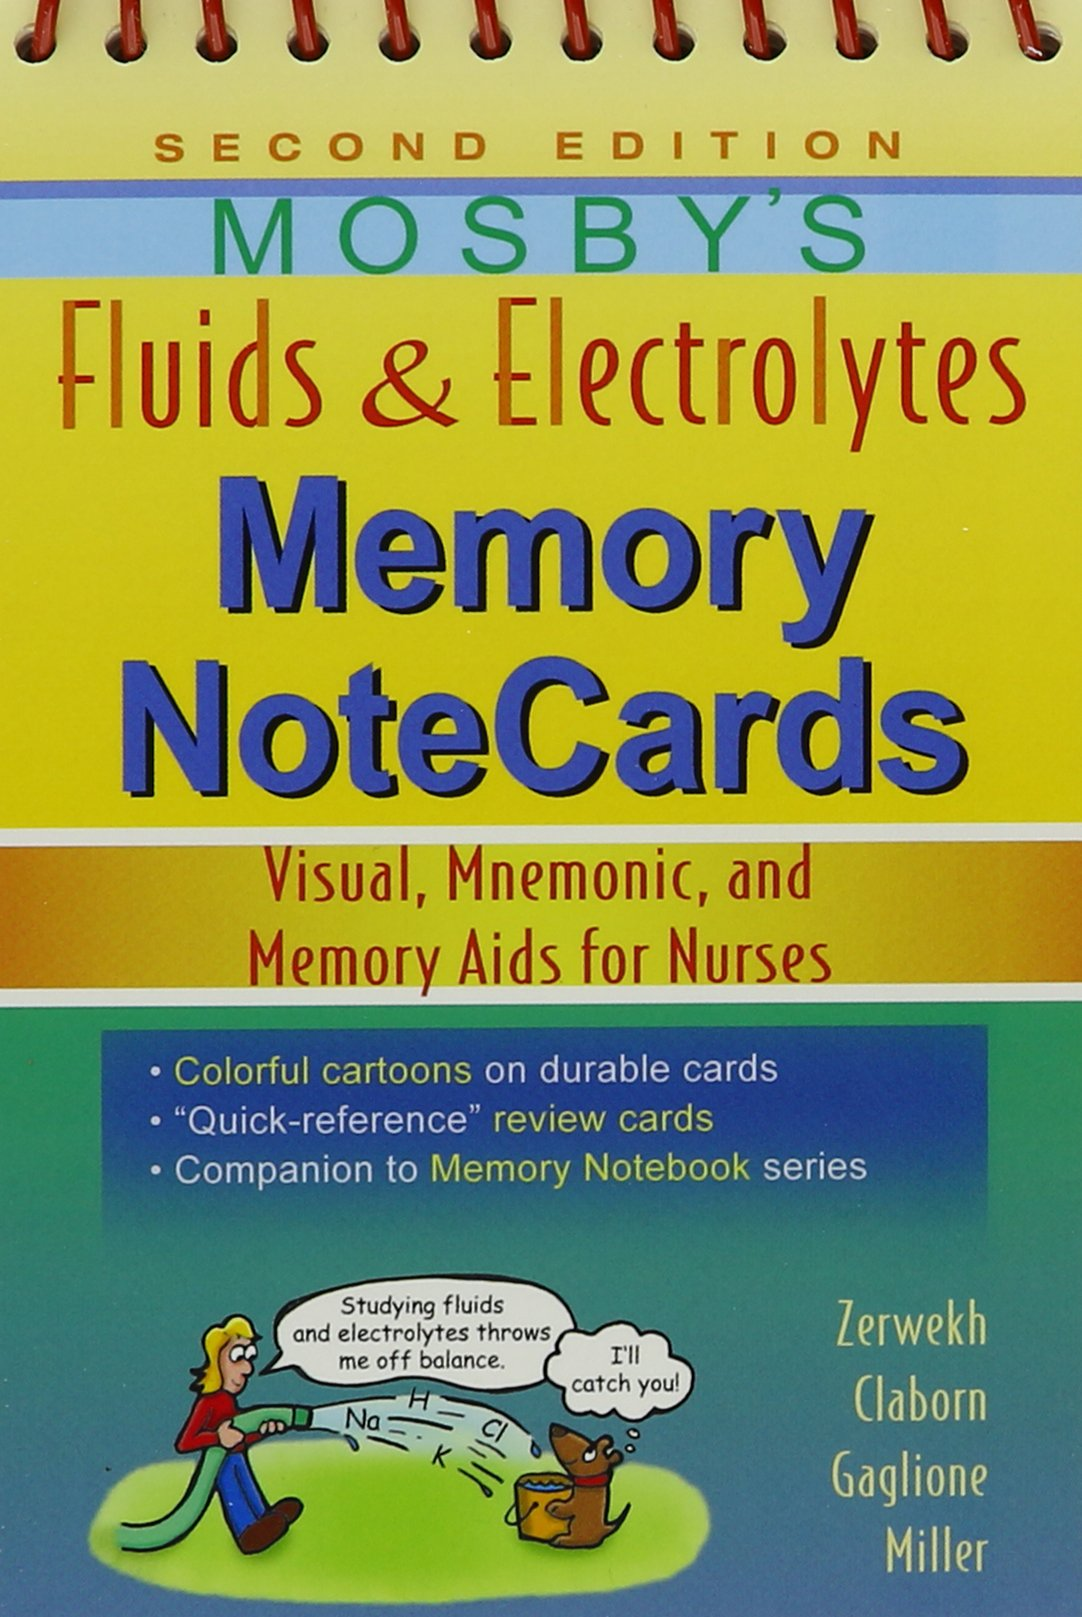 Fluids and Electrolytes Memory Note Cards (Mosbys Fluids and Electrolytes Memory Notecards) pdf